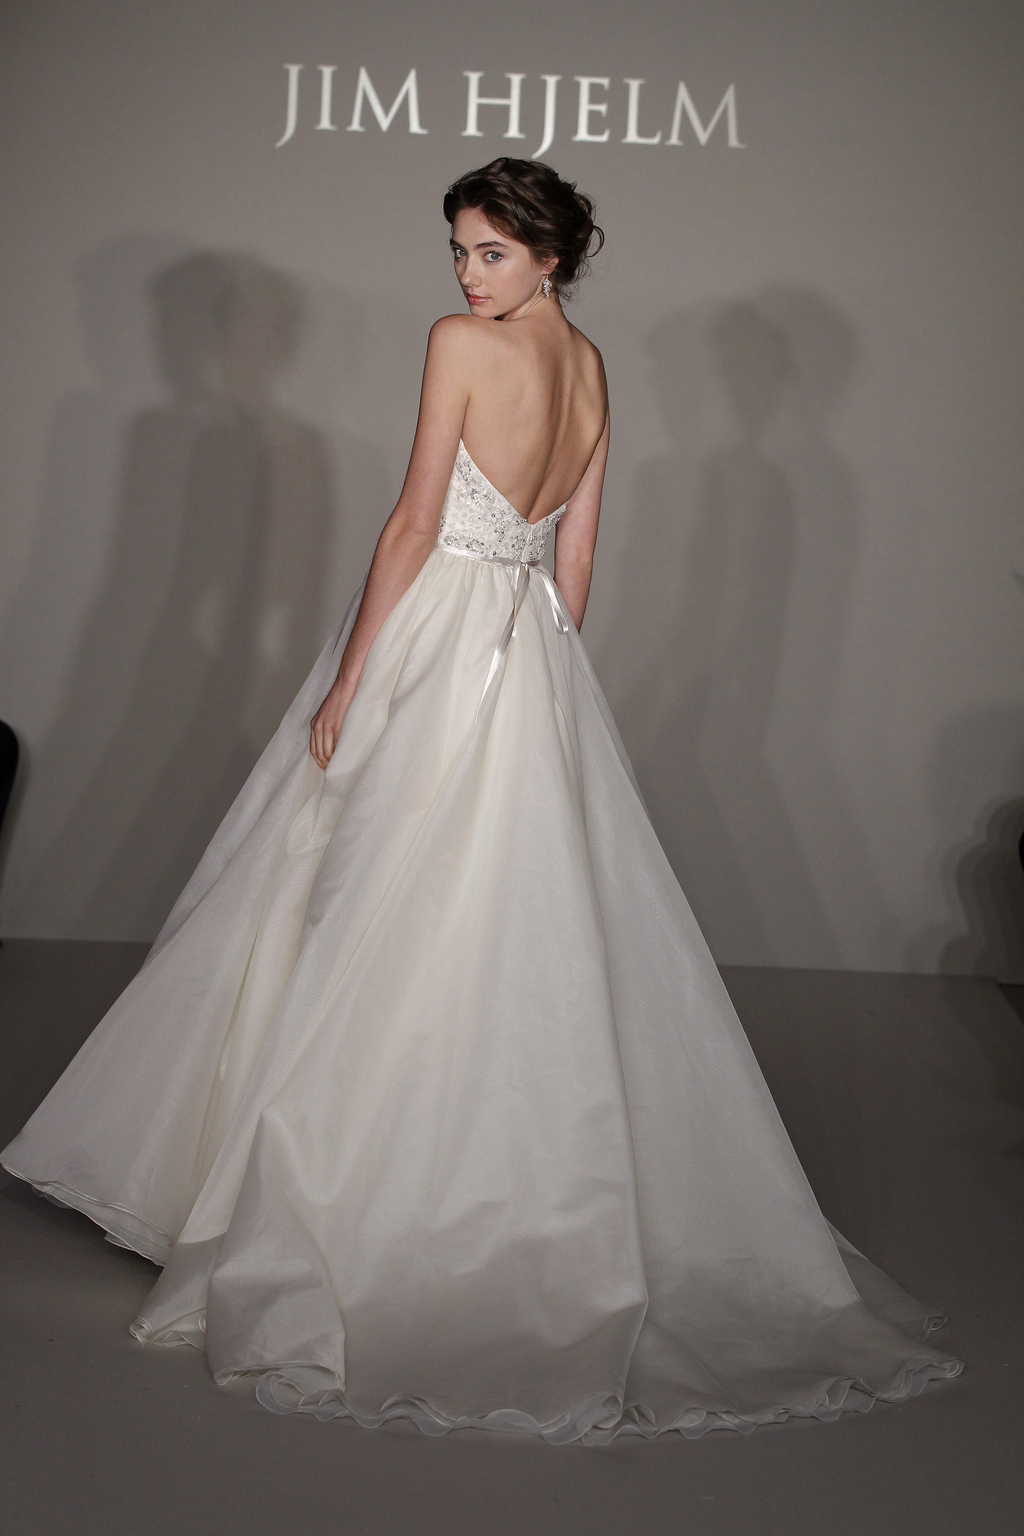 Jim hjelm bridal gowns spring 2012 for Jim hjelm wedding dresses